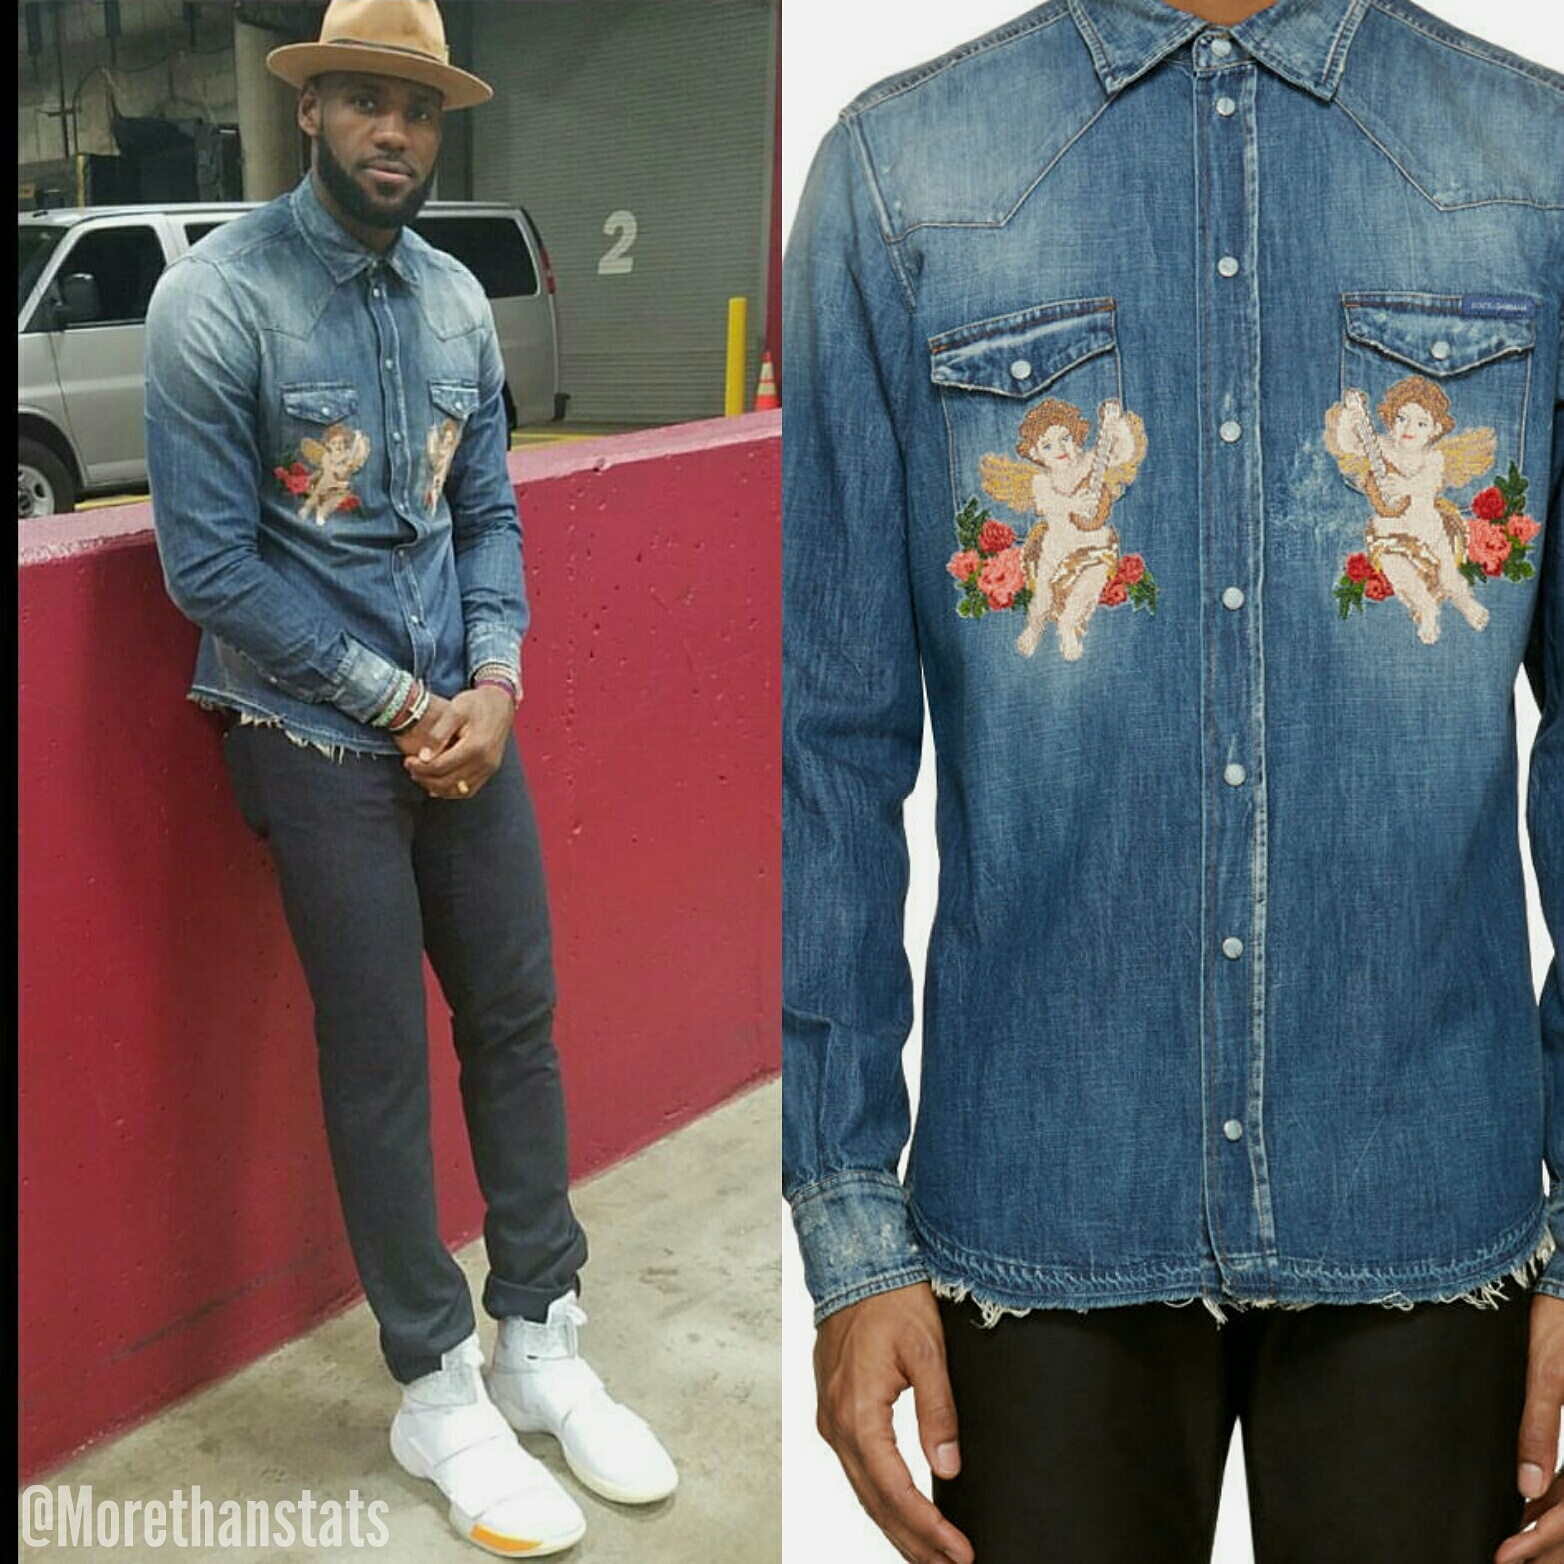 STYLE: Lebron James' Instagram Dolce & Gabbana Mens Denim 'Cherub' Shirt And Lebron Solider x John Elliott Sneakers